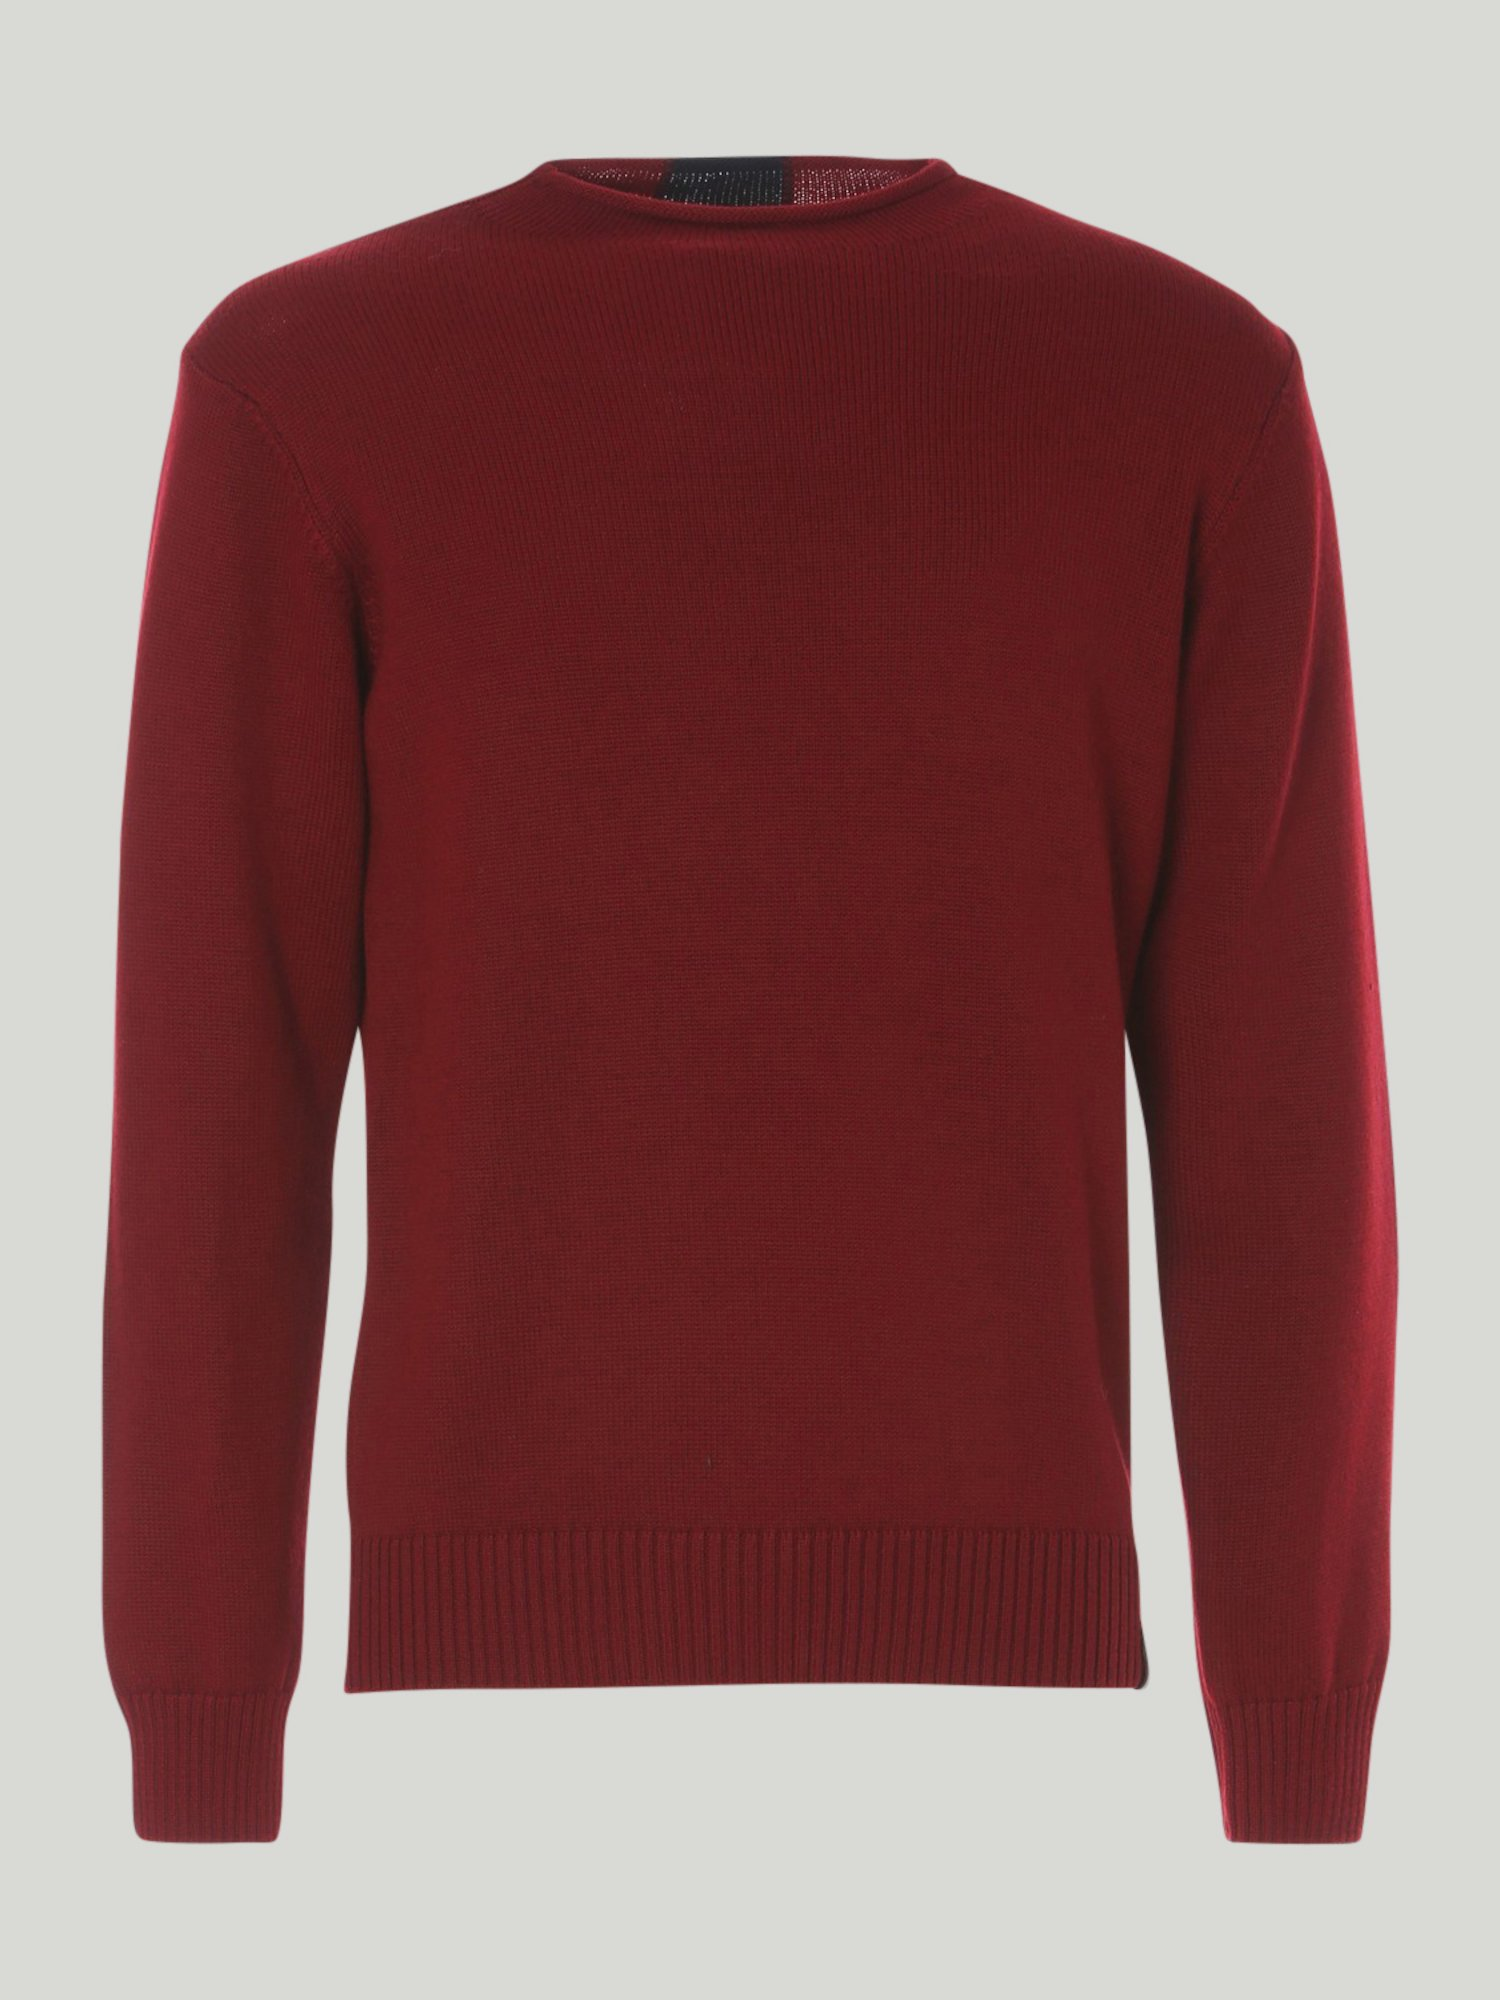 Comber Sweater - Breton Red